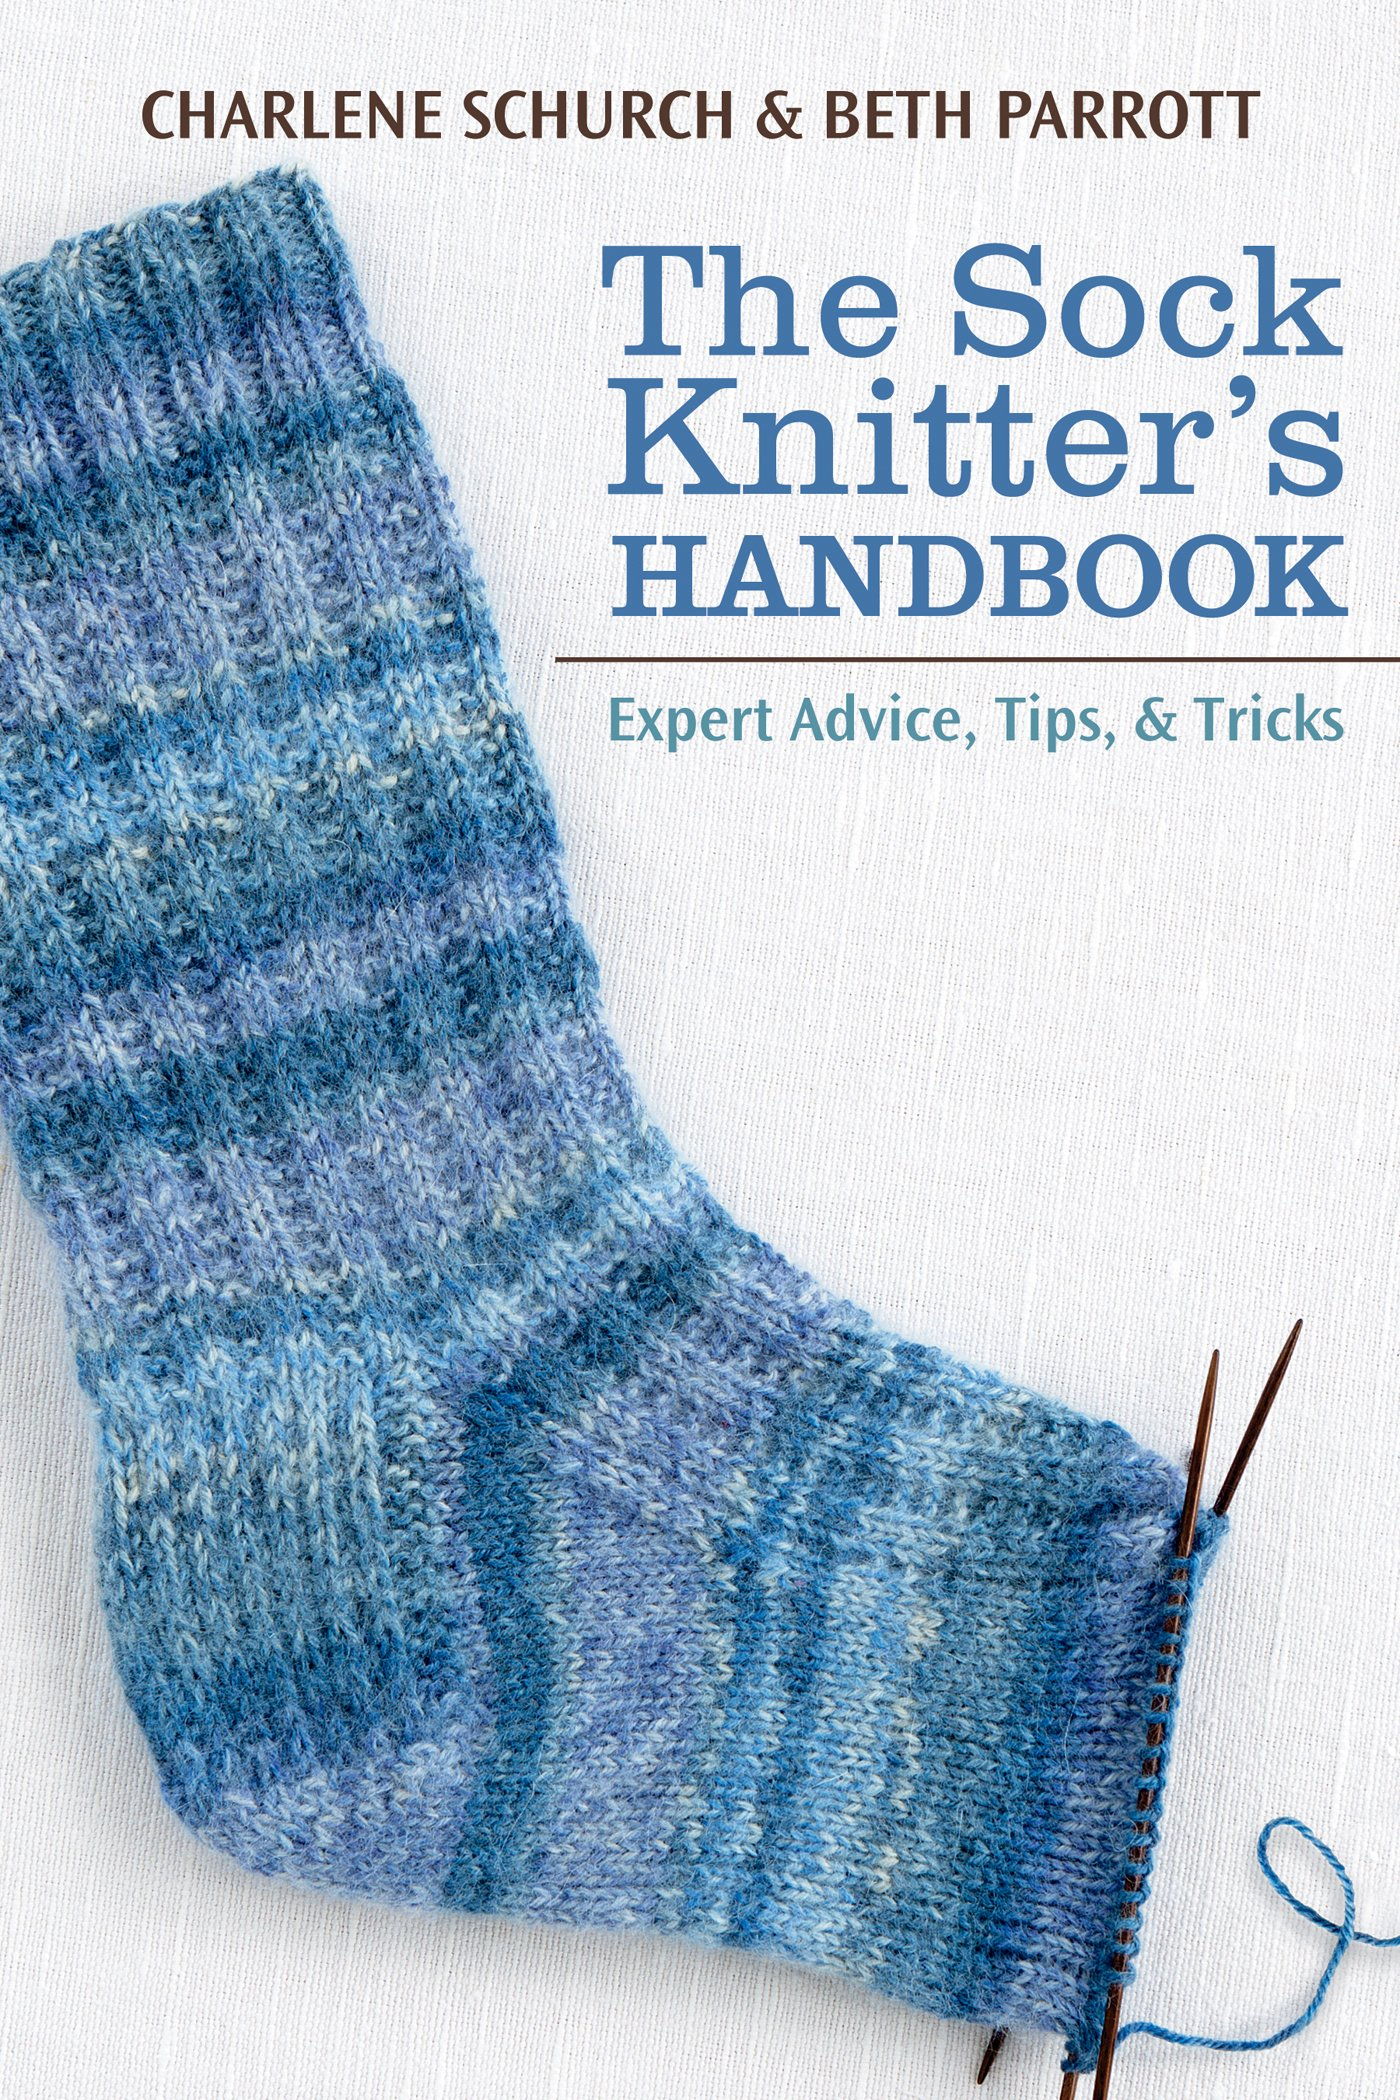 The Sock Knitter's Handbook: Expert Advice, Tips, and Tricks